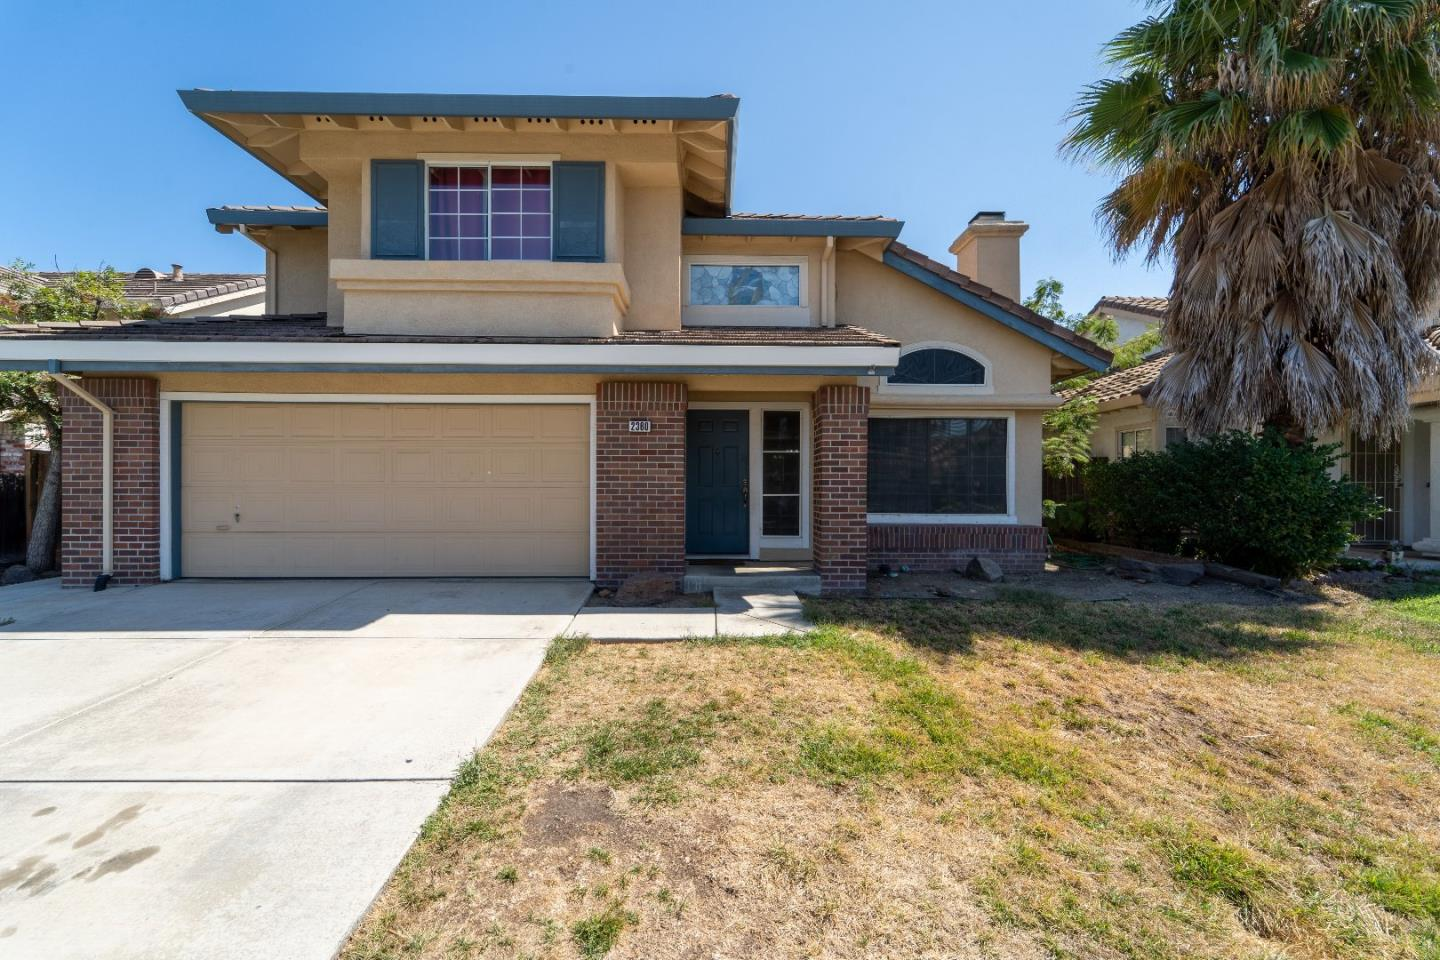 Detail Gallery Image 1 of 21 For 2360 Russell St, Tracy, CA 95376 - 4 Beds | 2/1 Baths